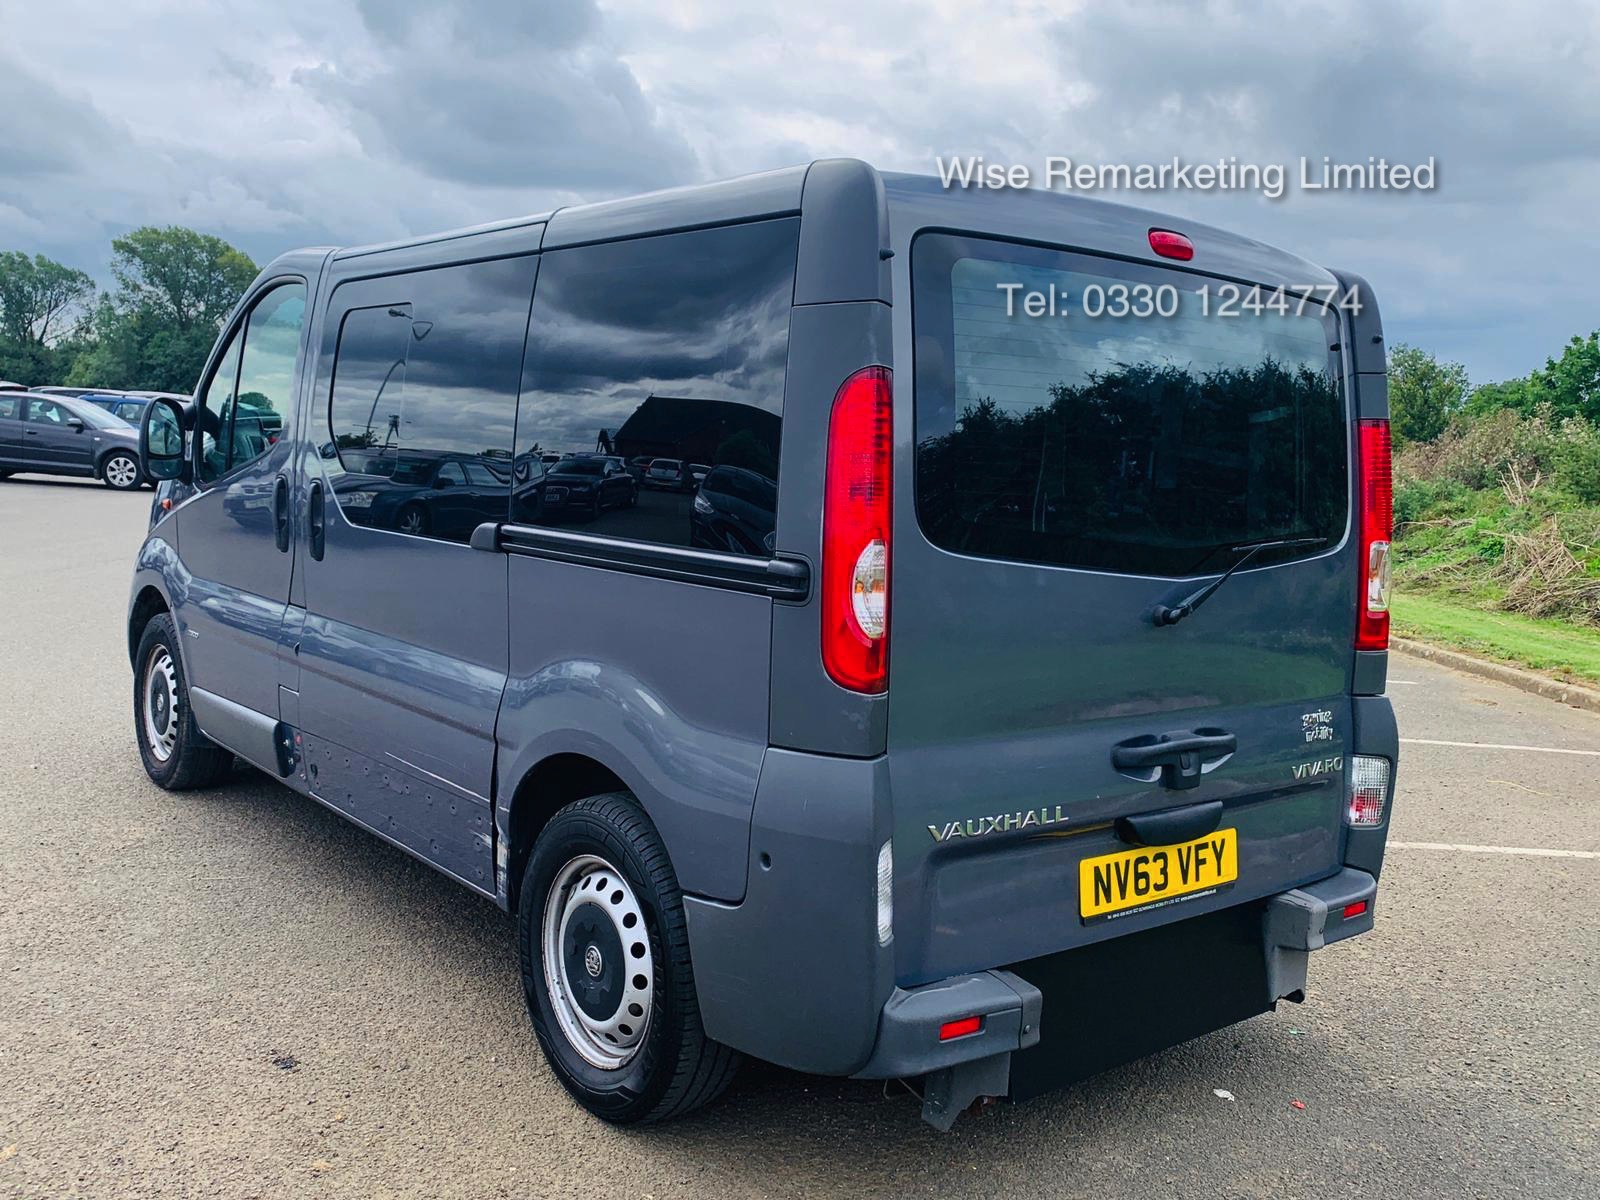 Vauxhall Vivaro 2.0 CDTI 2900 Minibus - 2014 Model - Wheel Chair Access -1 Owner From New -History - Image 2 of 21